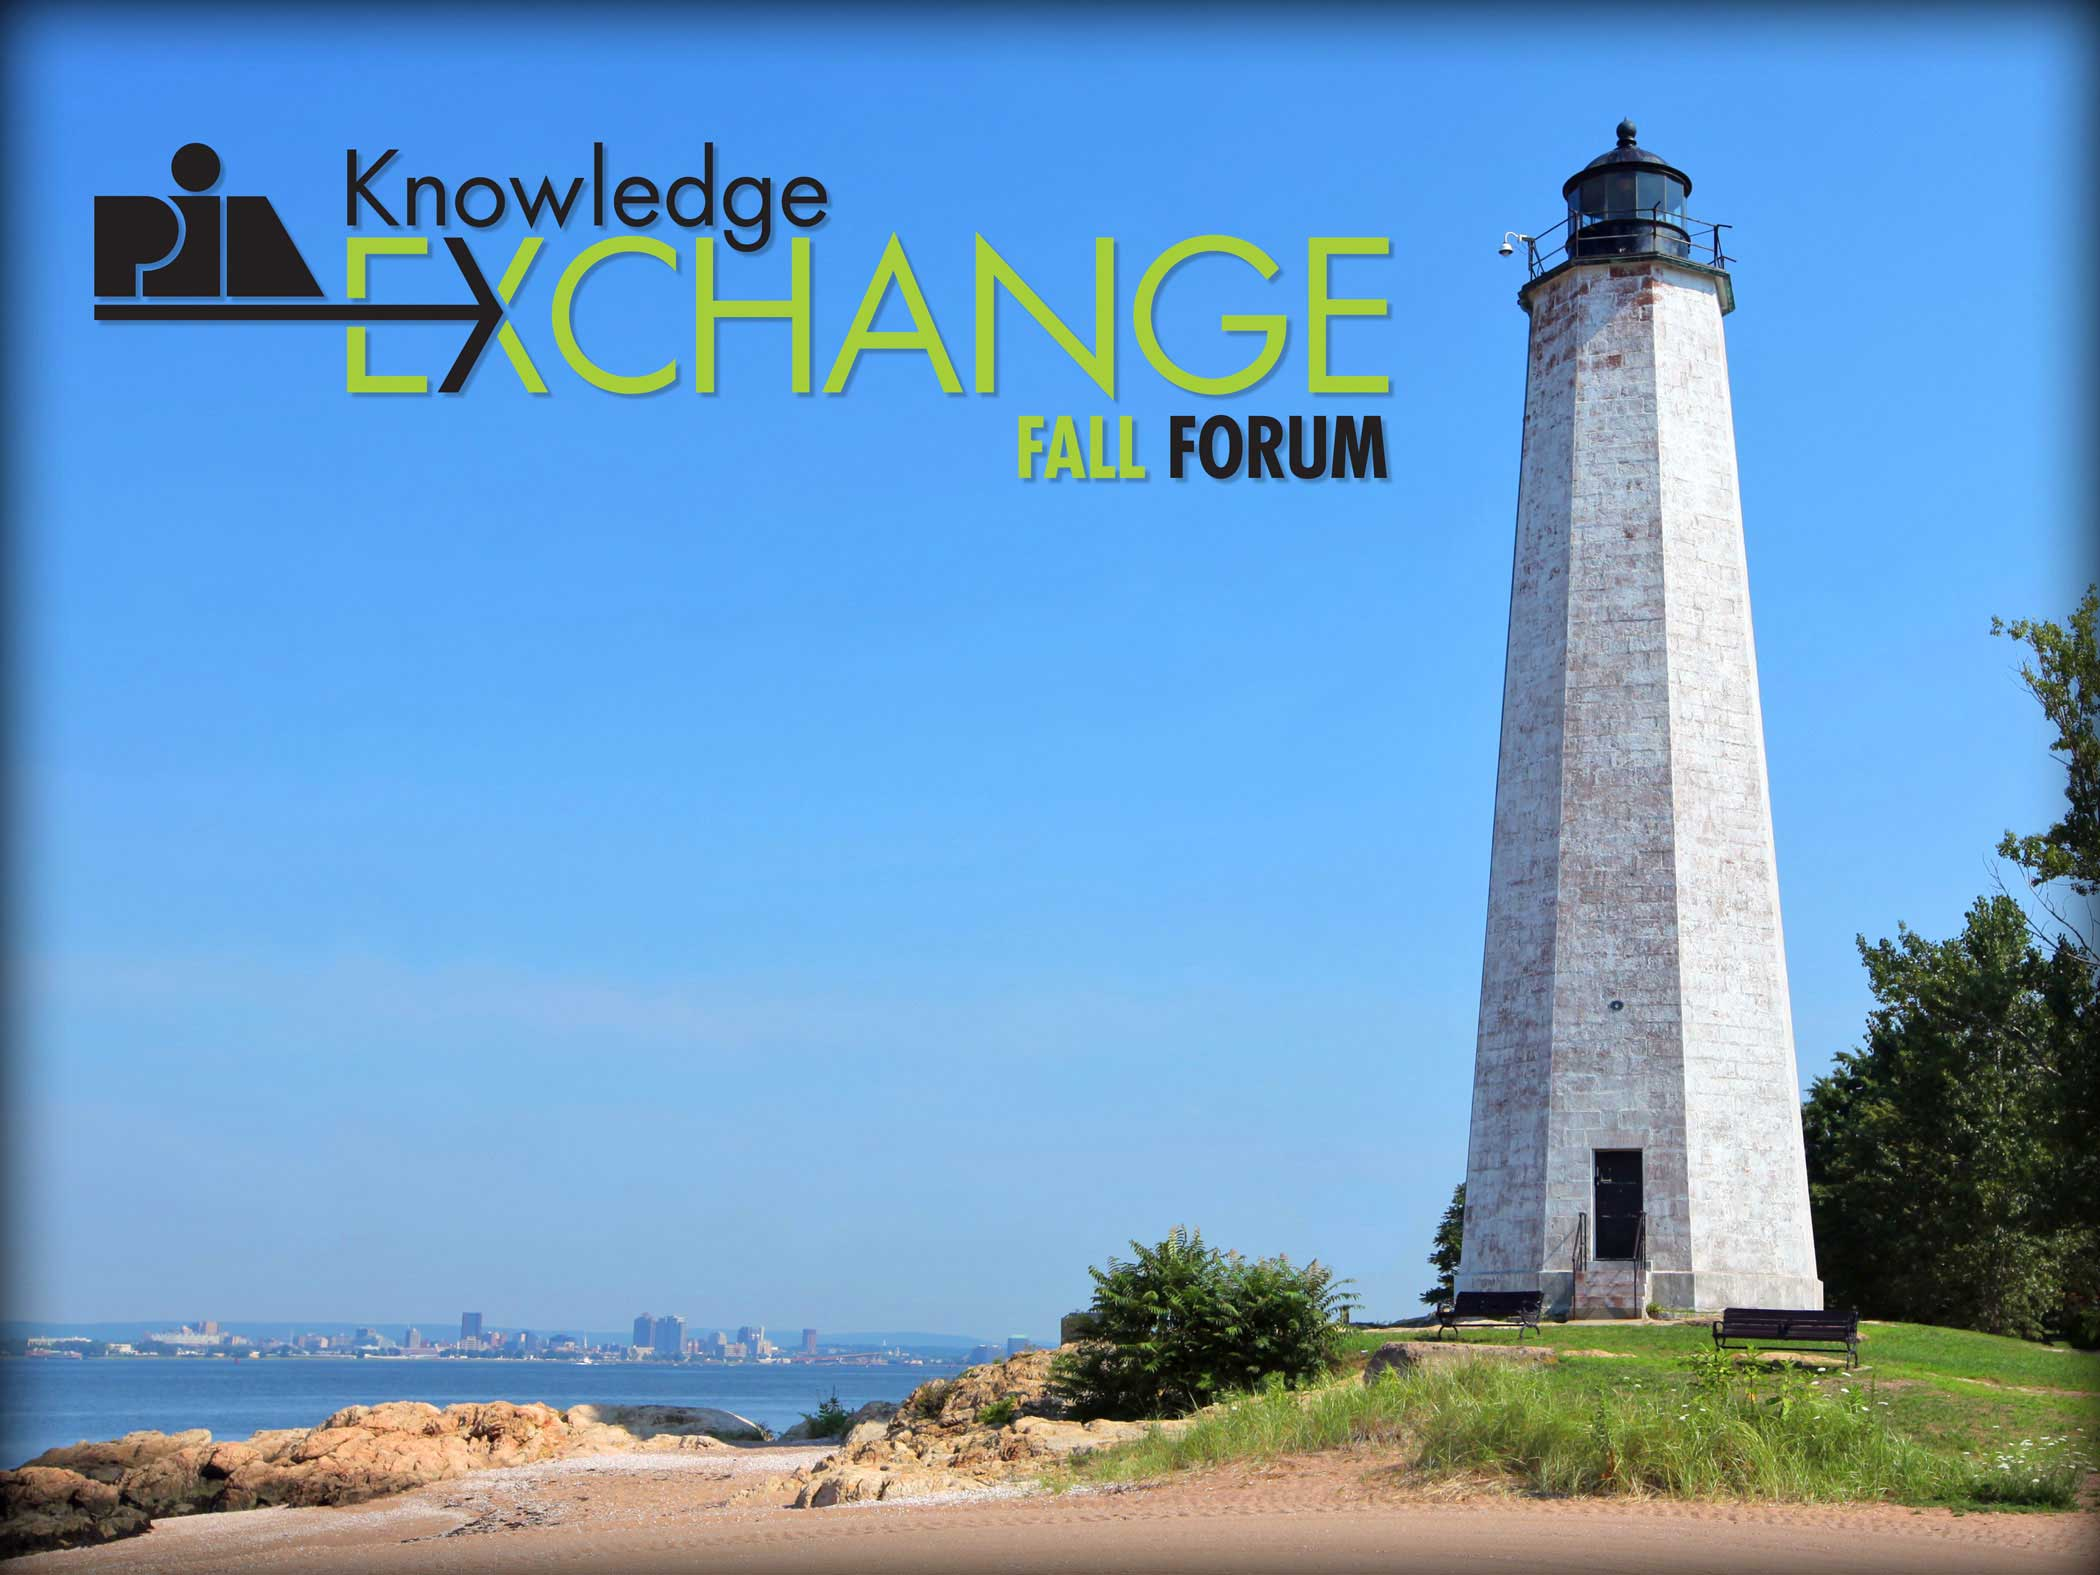 PIACT Knowledge Exchange Fall Forum